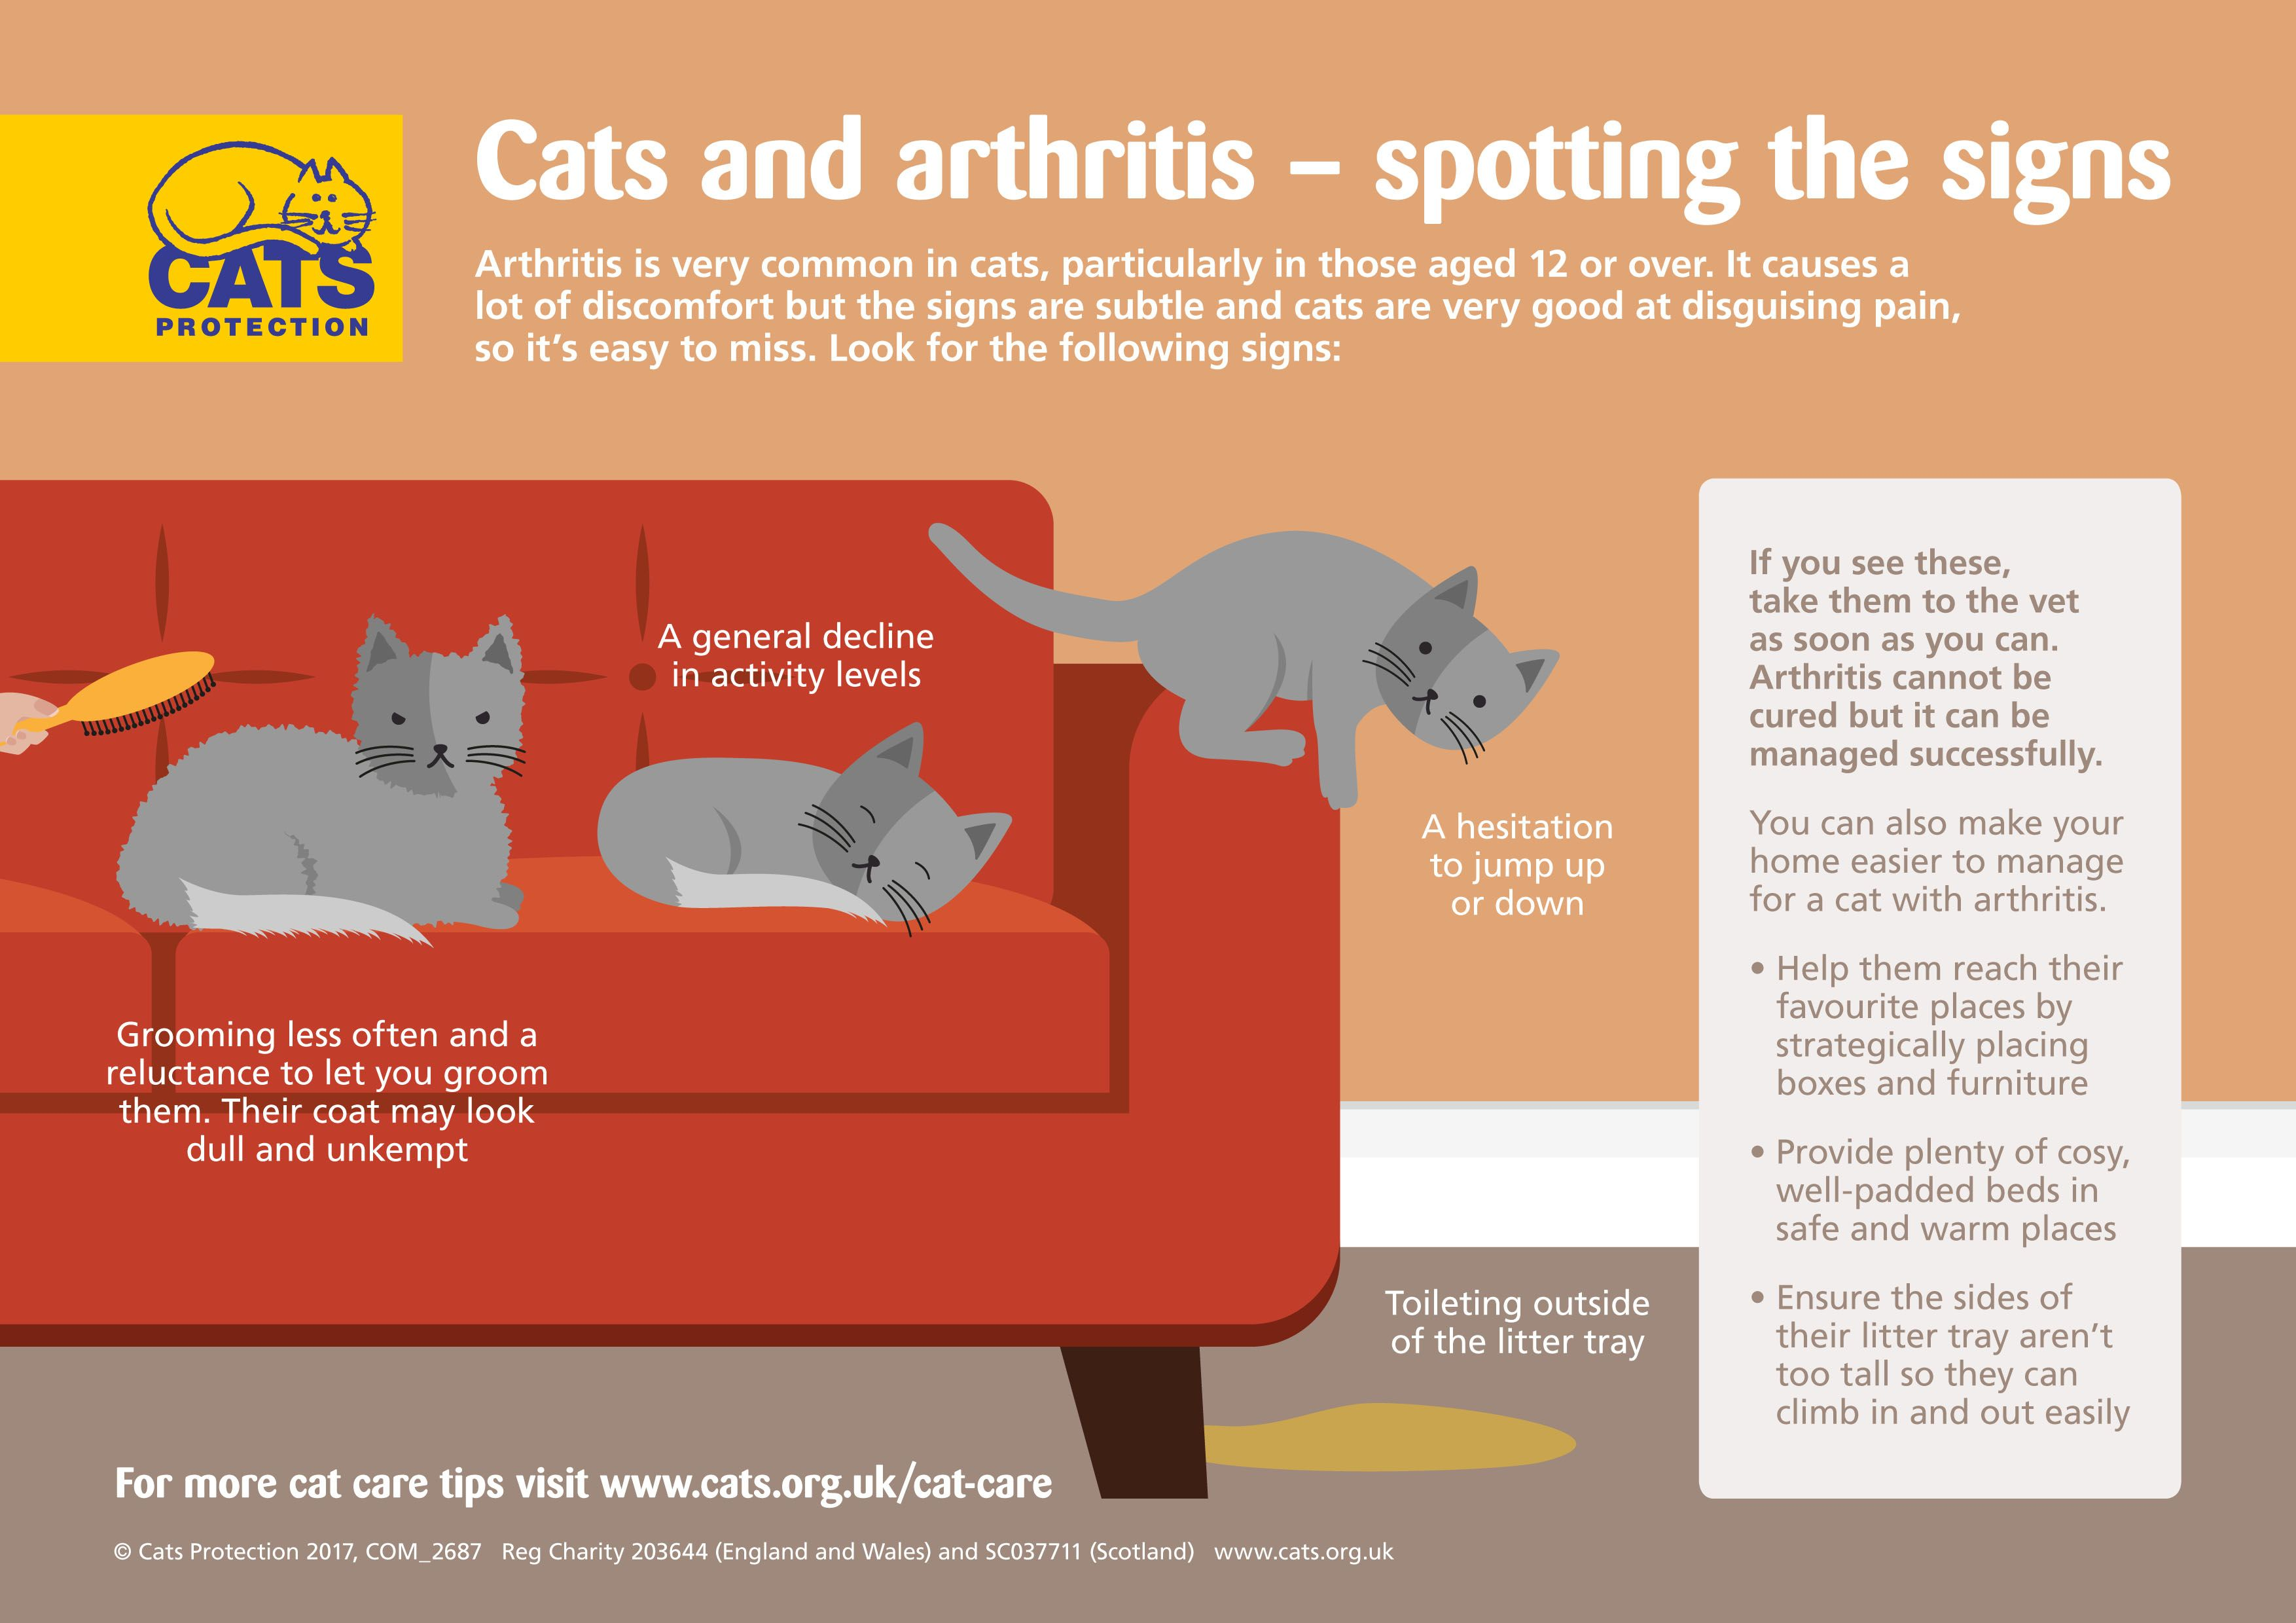 Cats And Arthritis How To Spot The Signs Cat Signs Cats Cat Care